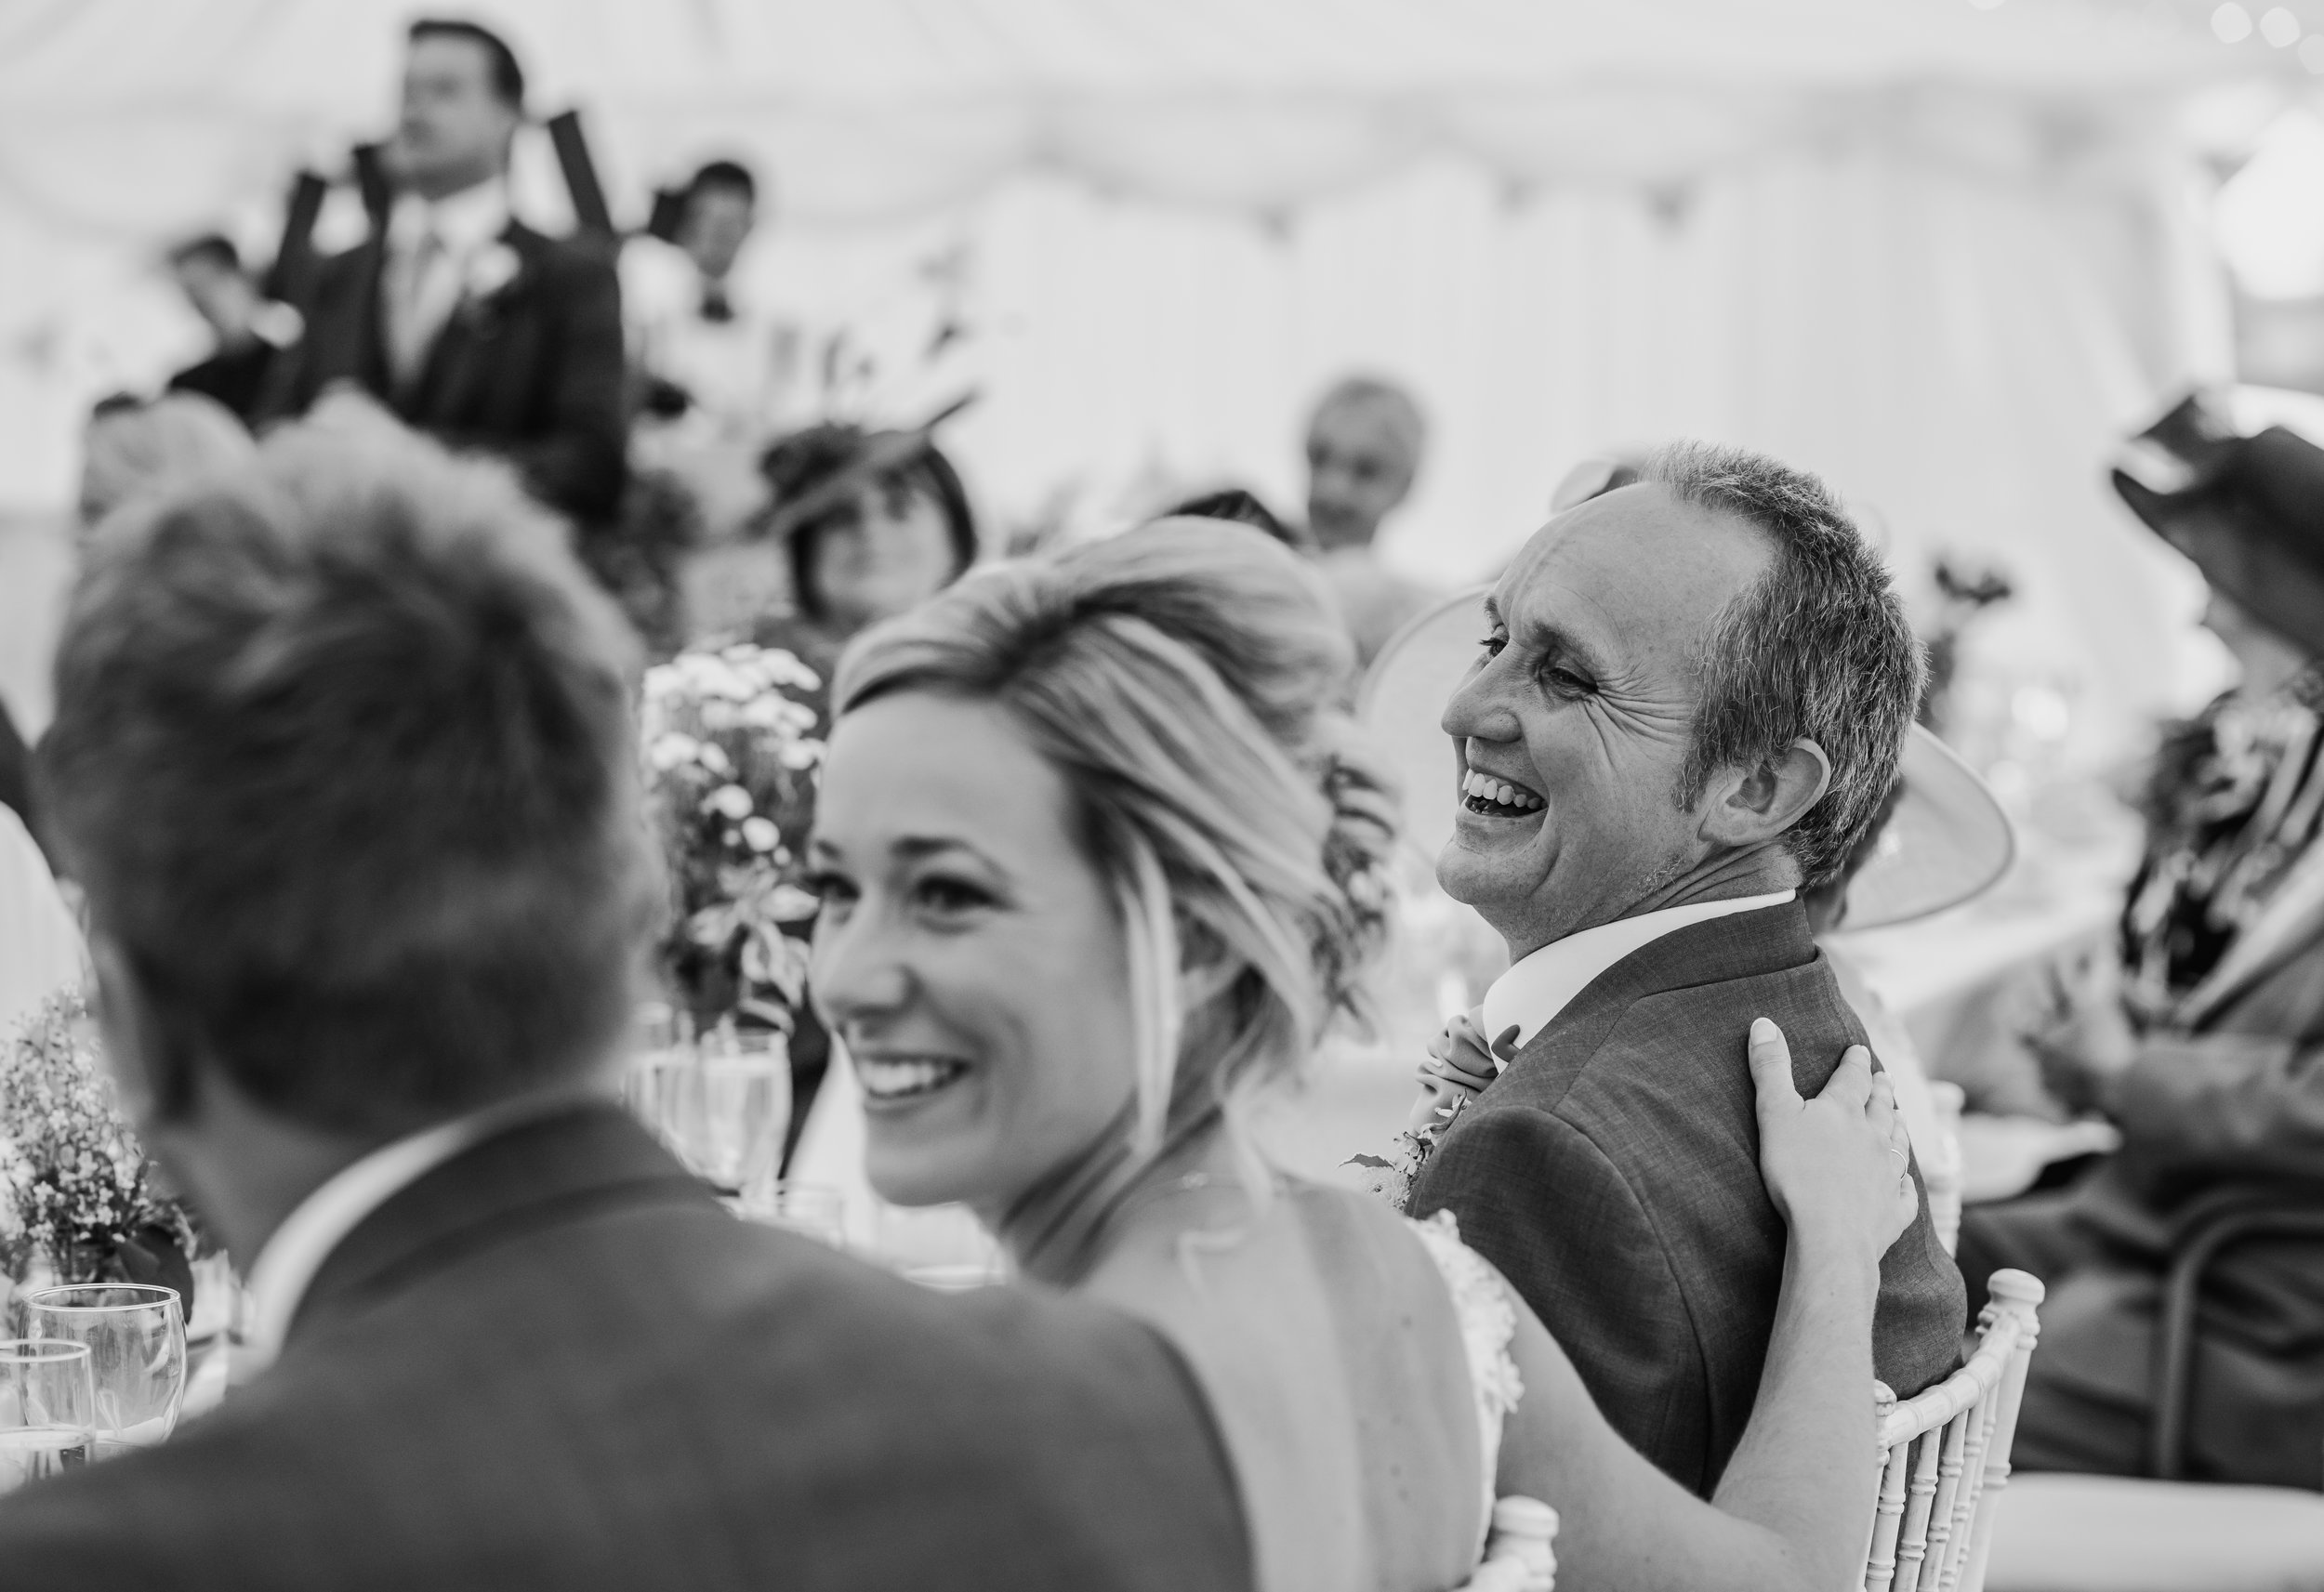 bw photo. Brides hand on her fathers back as he laughs